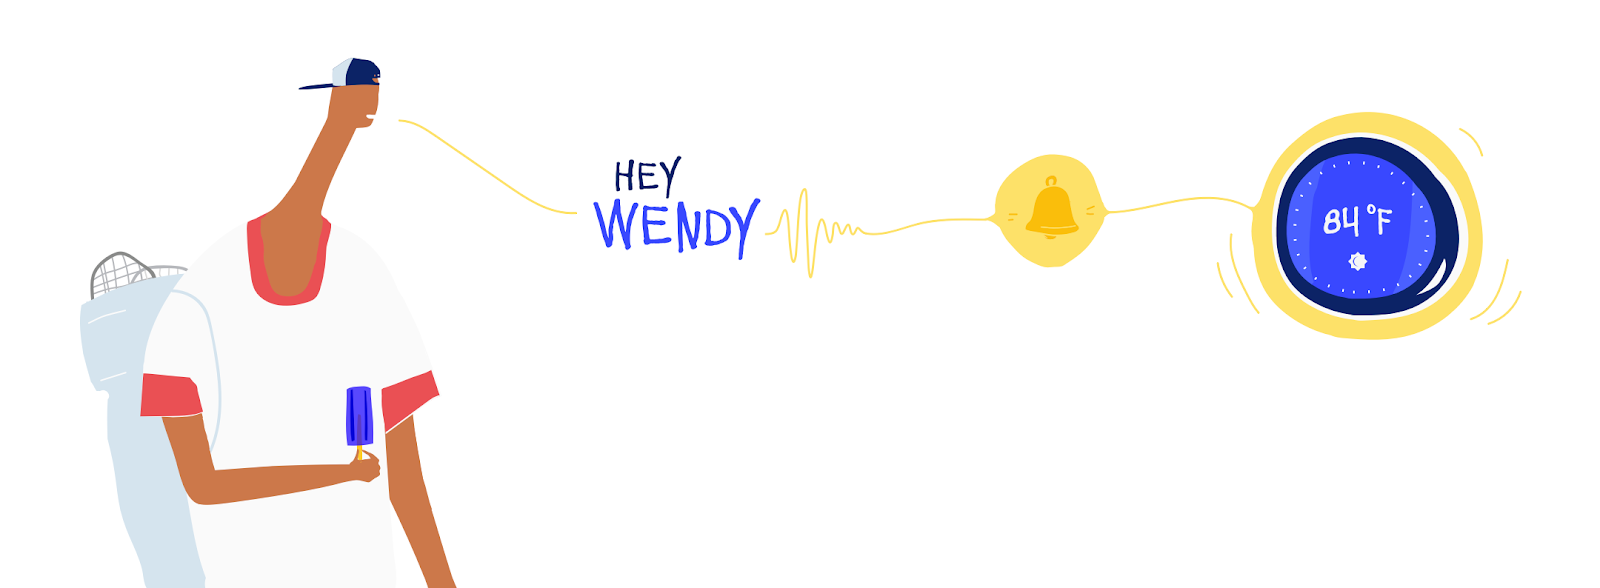 Customize your Voice Assistant with Personal Wake Words